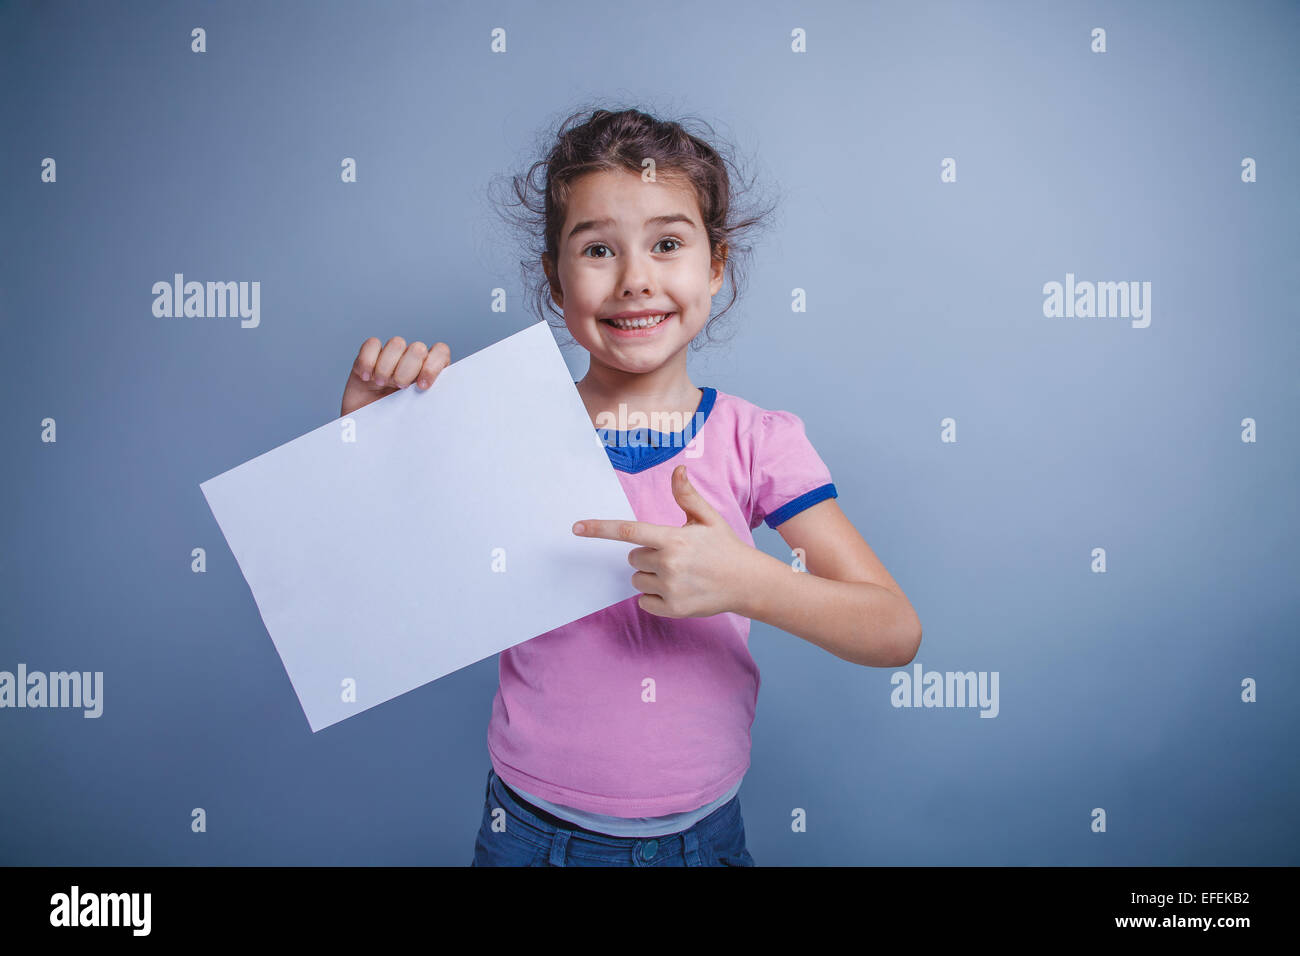 girl child 6 years of European appearance holds a clean sheet, s - Stock Image